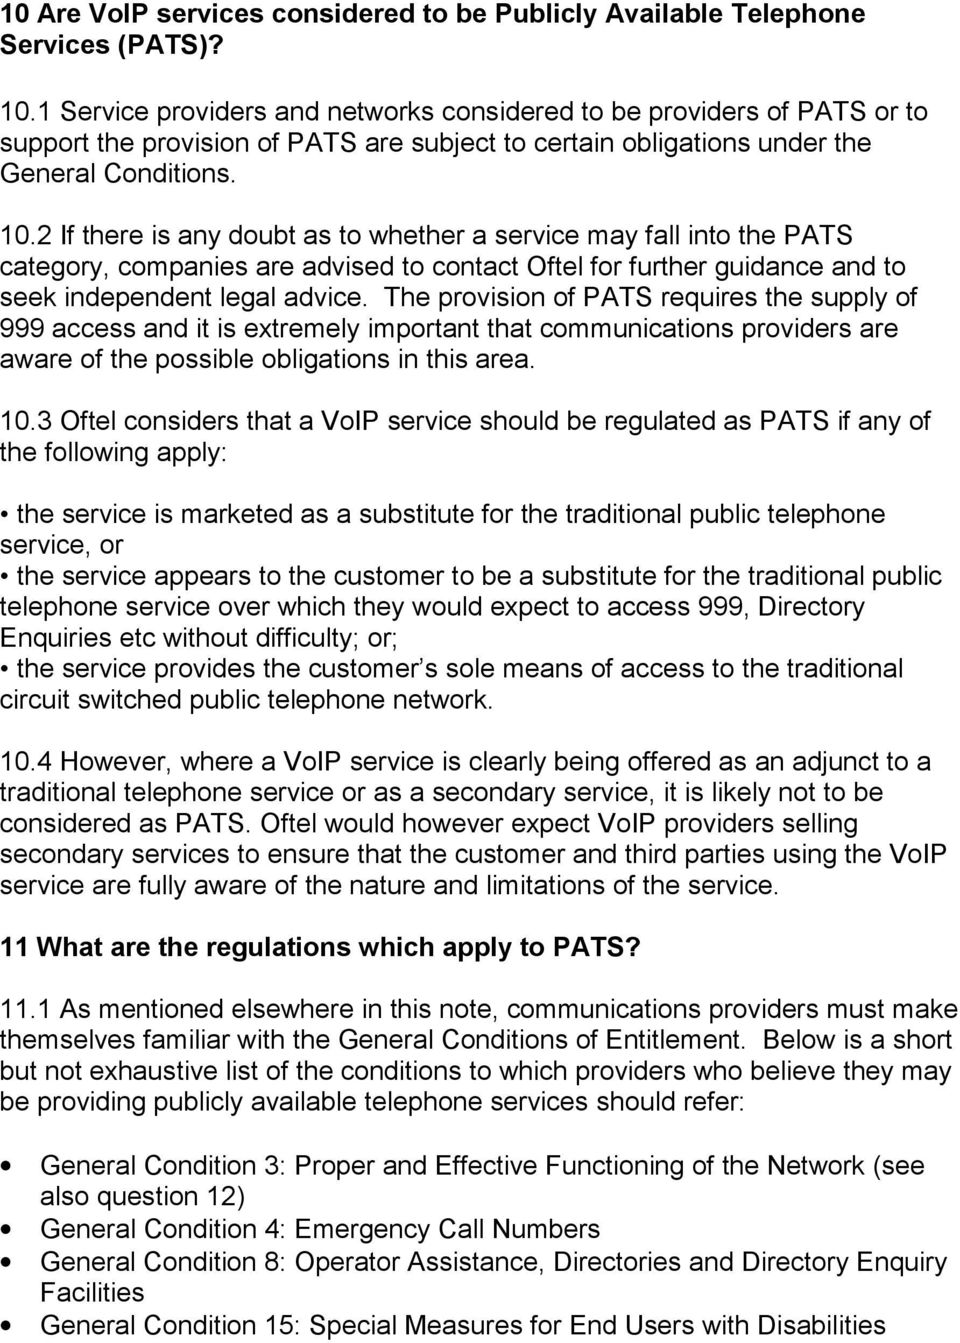 2 If there is any doubt as to whether a service may fall into the PATS category, companies are advised to contact Oftel for further guidance and to seek independent legal advice.